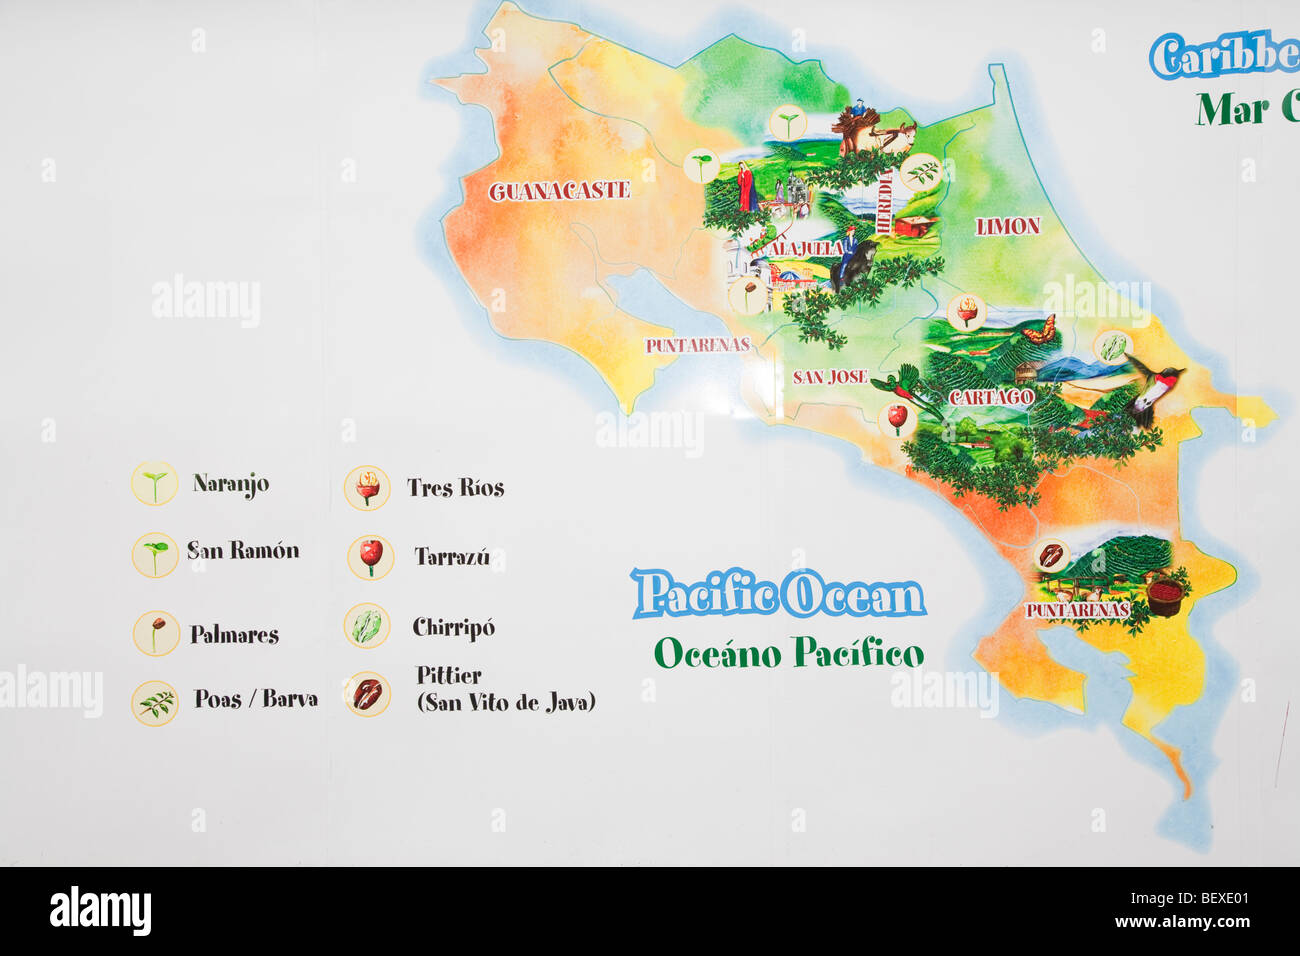 Cafe Britts Coffee Farm Map Of Coffe Regions Near Barva De - Costa rica regions map